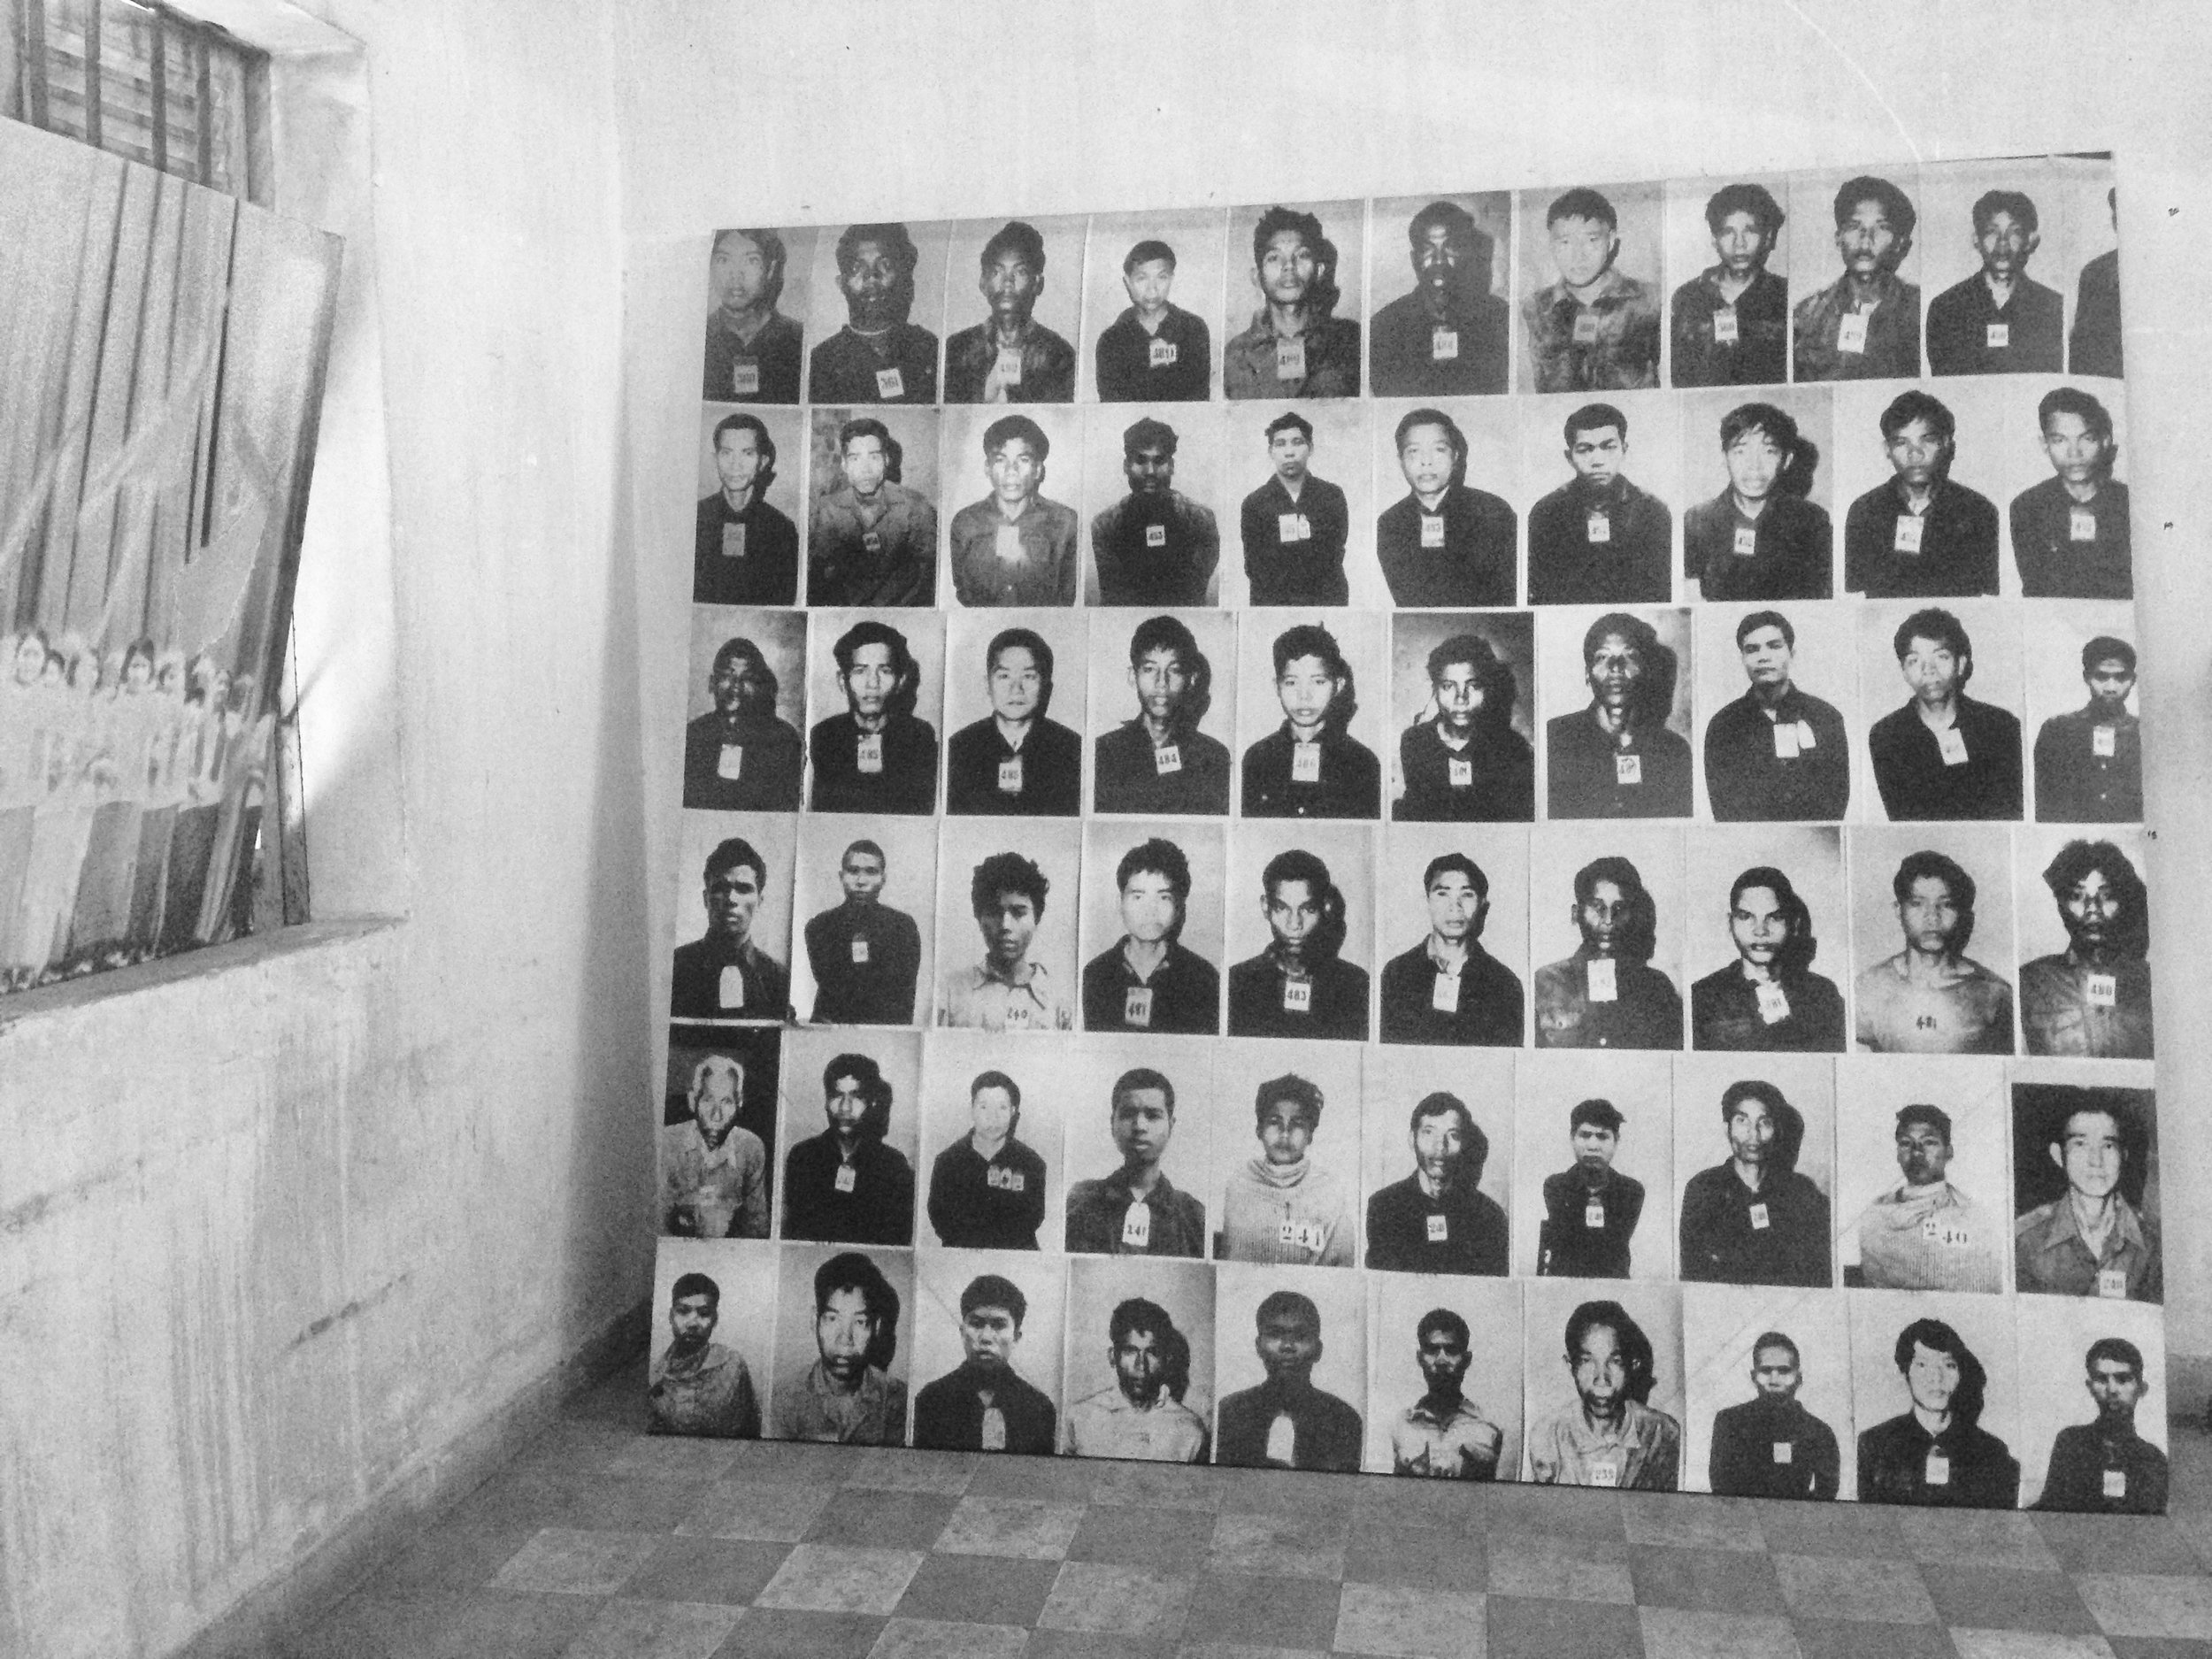 Photographs of men detained before they were shackled in mass detention rooms